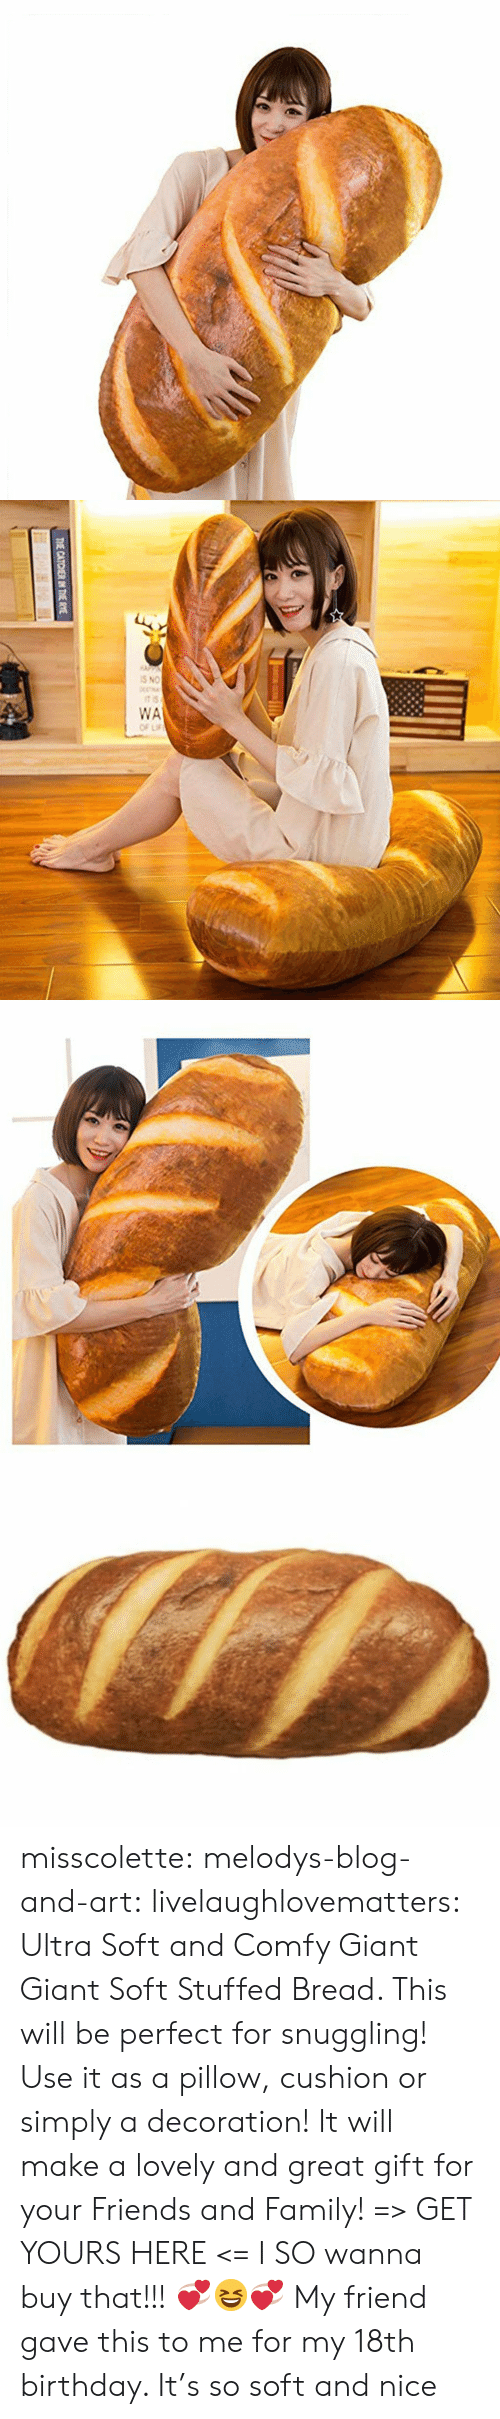 stuffed: THE CATCHER IN THE RYE misscolette:  melodys-blog-and-art: livelaughlovematters:  Ultra Soft and Comfy Giant Giant Soft Stuffed Bread. This will be perfect for snuggling! Use it as a pillow, cushion or simply a decoration! It will make a lovely and great gift for your Friends and Family! => GET YOURS HERE <=   I SO wanna buy that!!! 💞😆💞   My friend gave this to me for my 18th birthday. It's so soft and nice